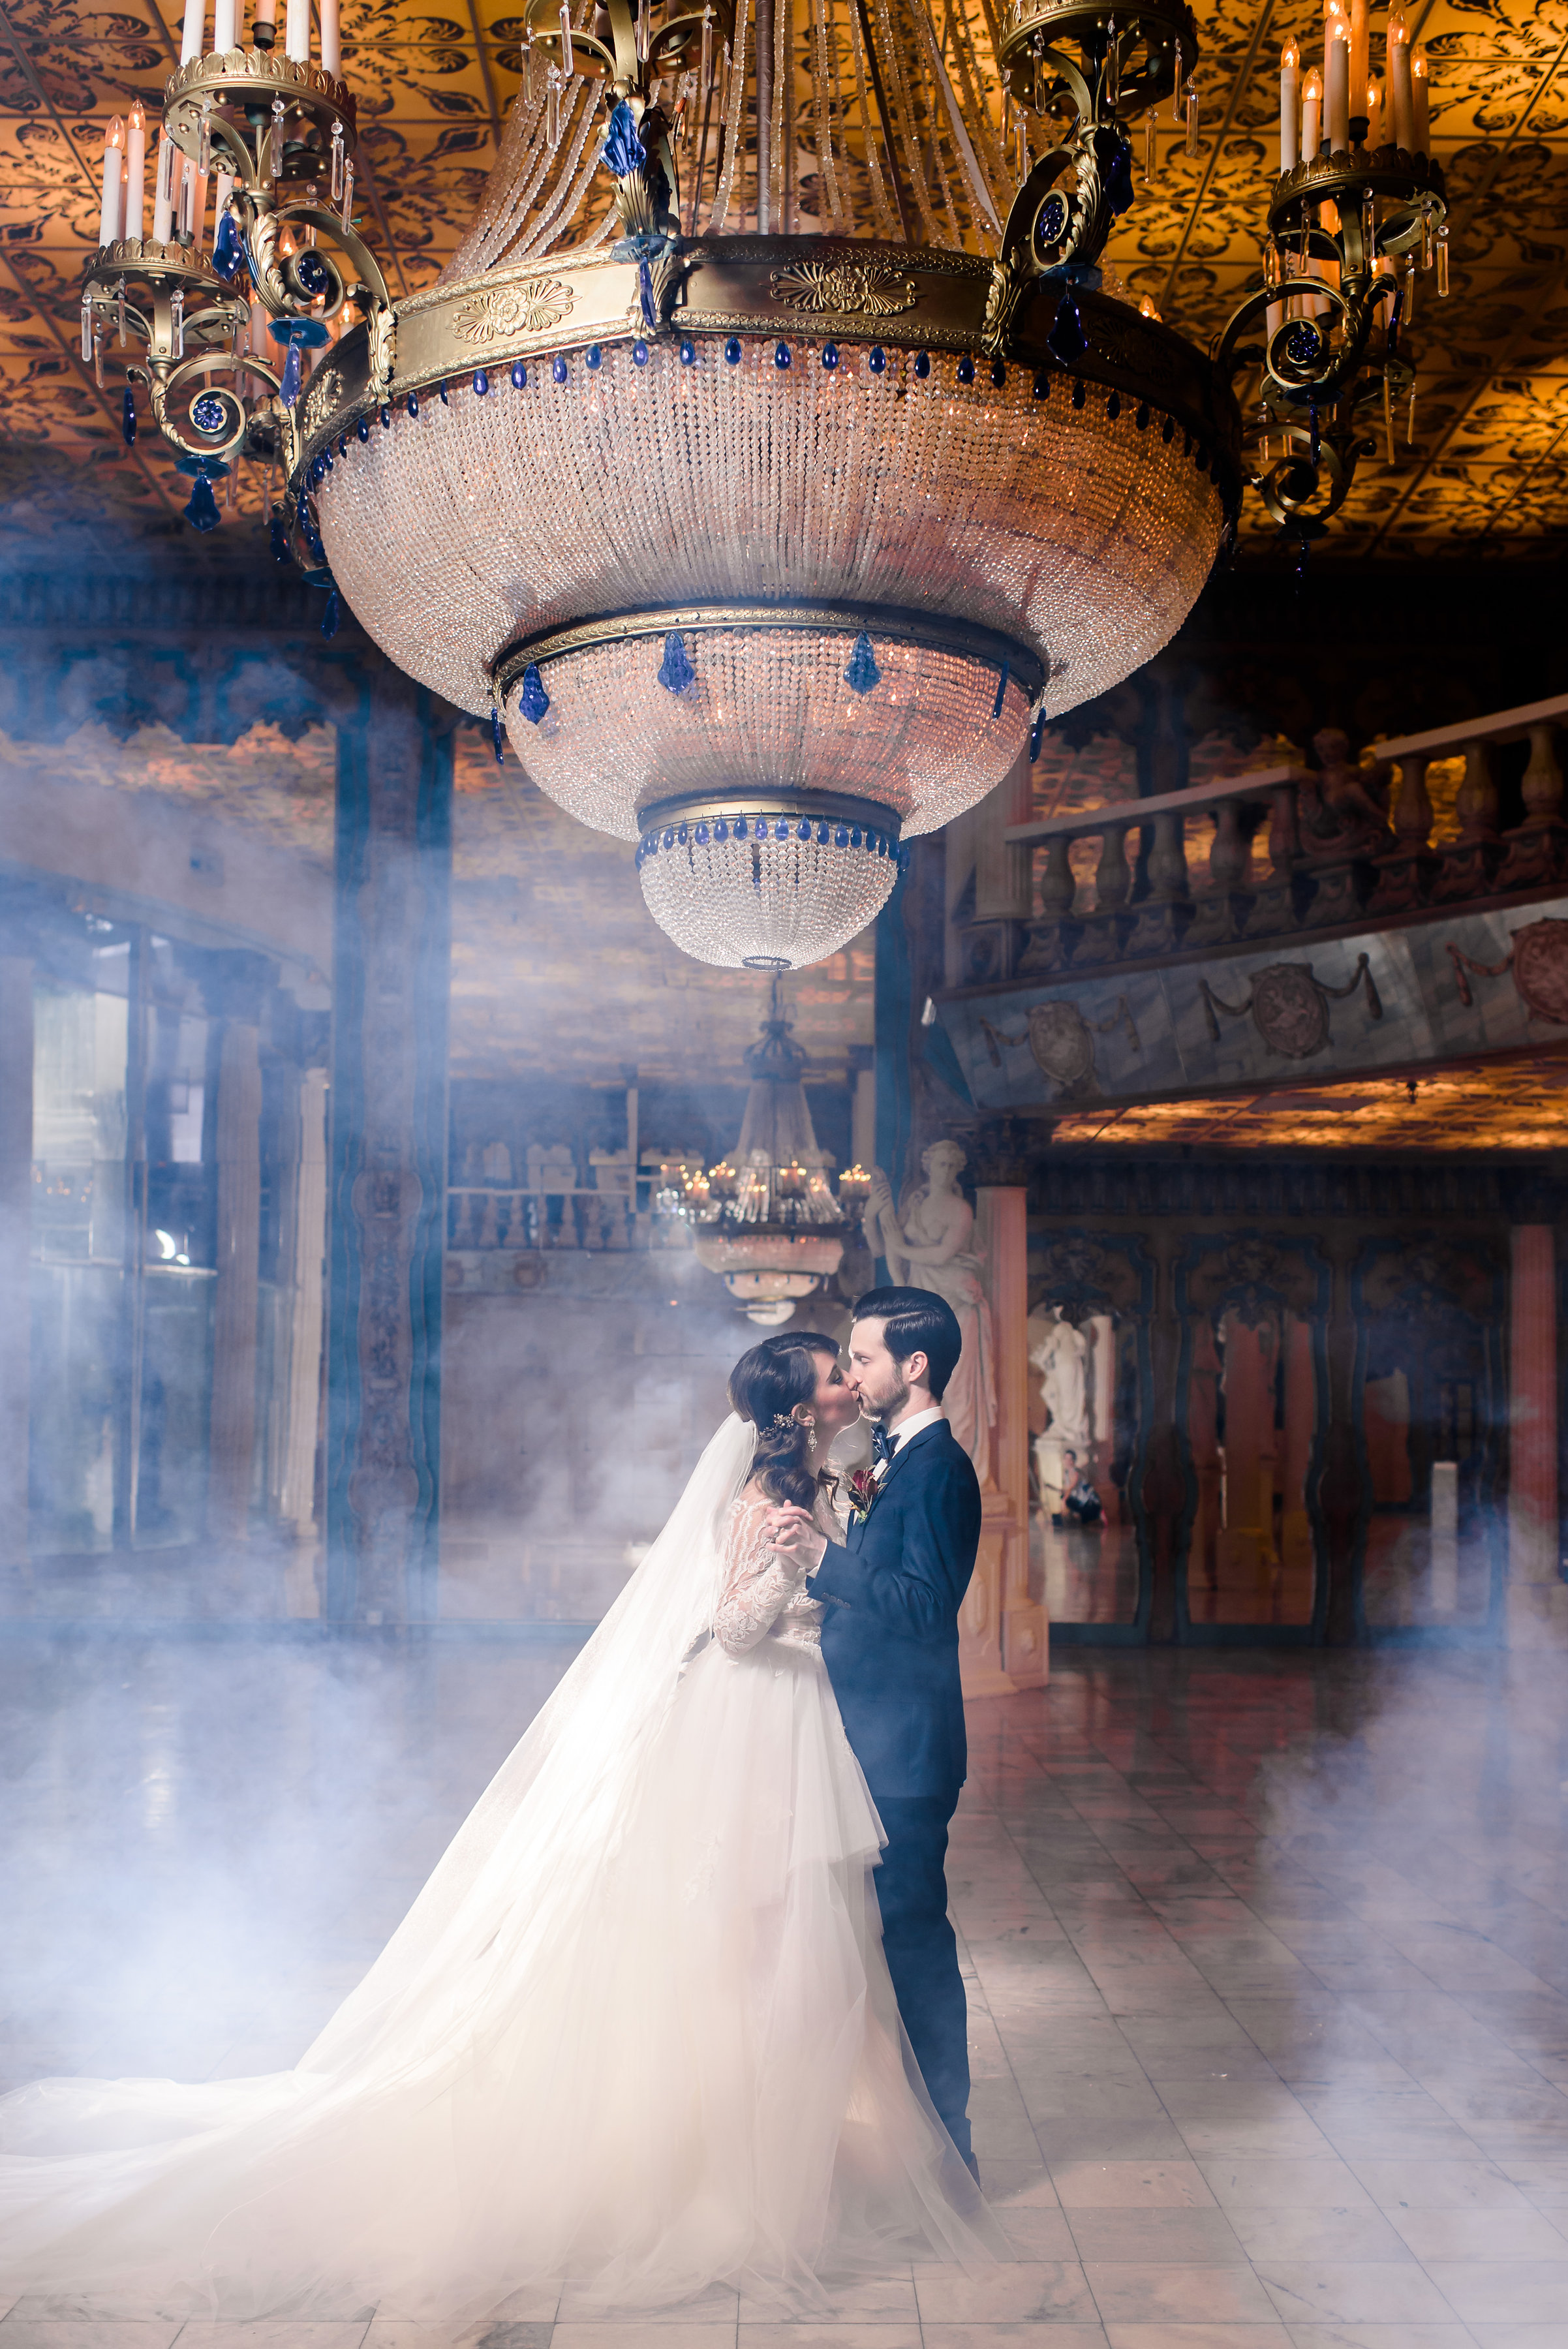 This ballroom looks like something out of a dream!                          The couple shared a dance under the majestic chandelier along a fog-filled marble floor.